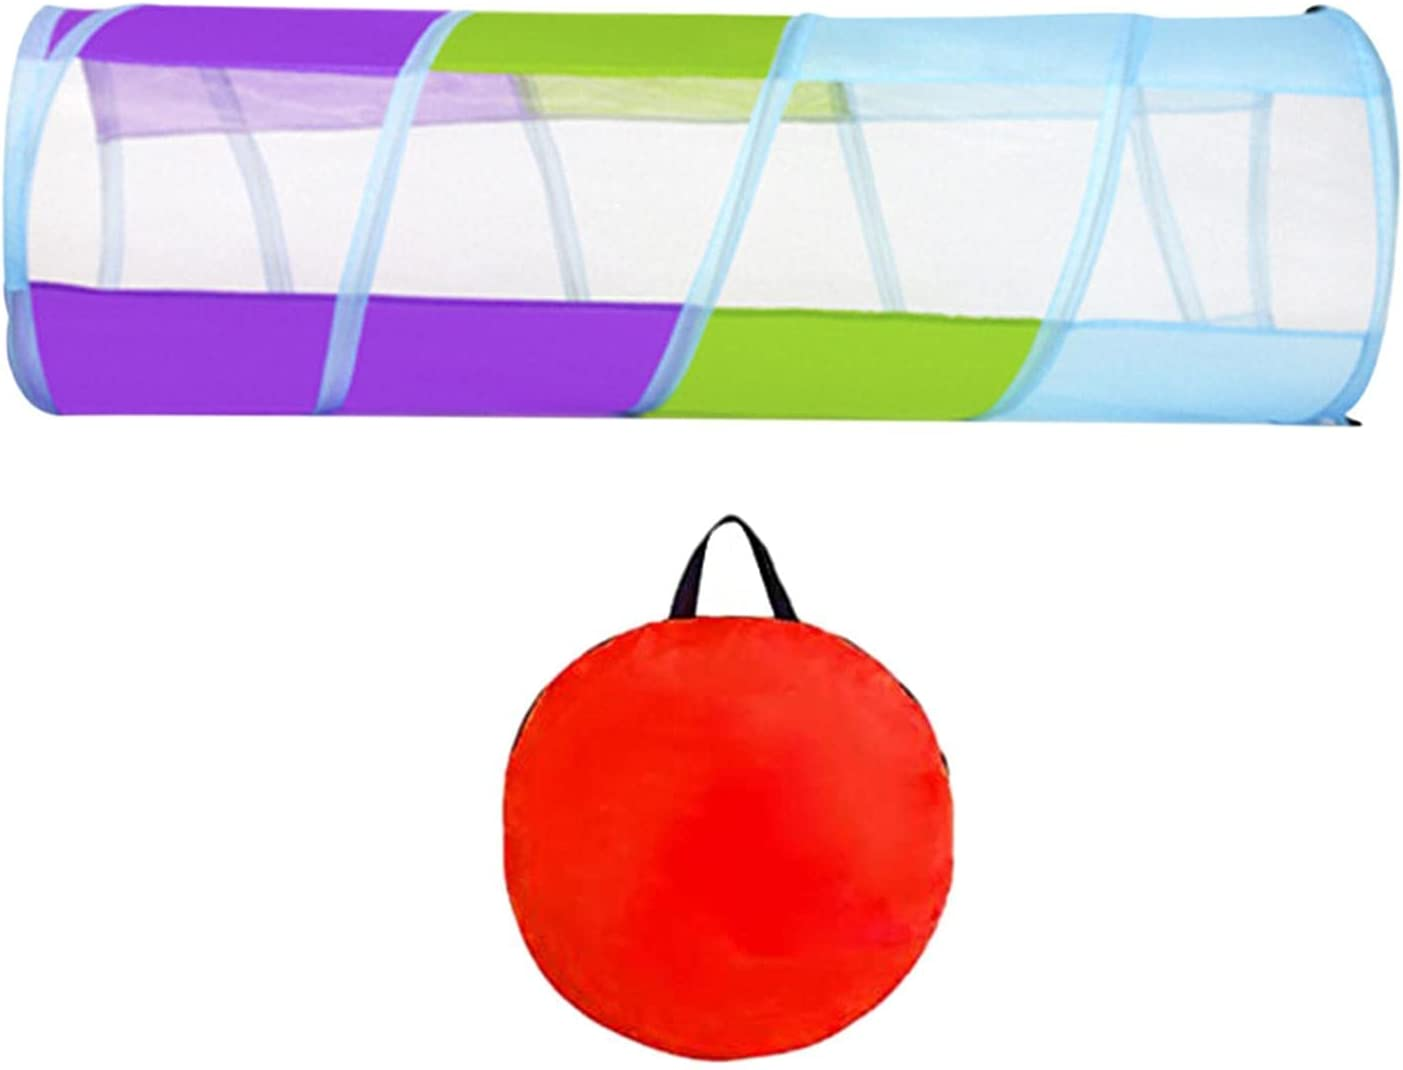 Overseas parallel import regular item ADJ Toddlers Tunnel Import for Kids Pop T Through Baby Up Crawl